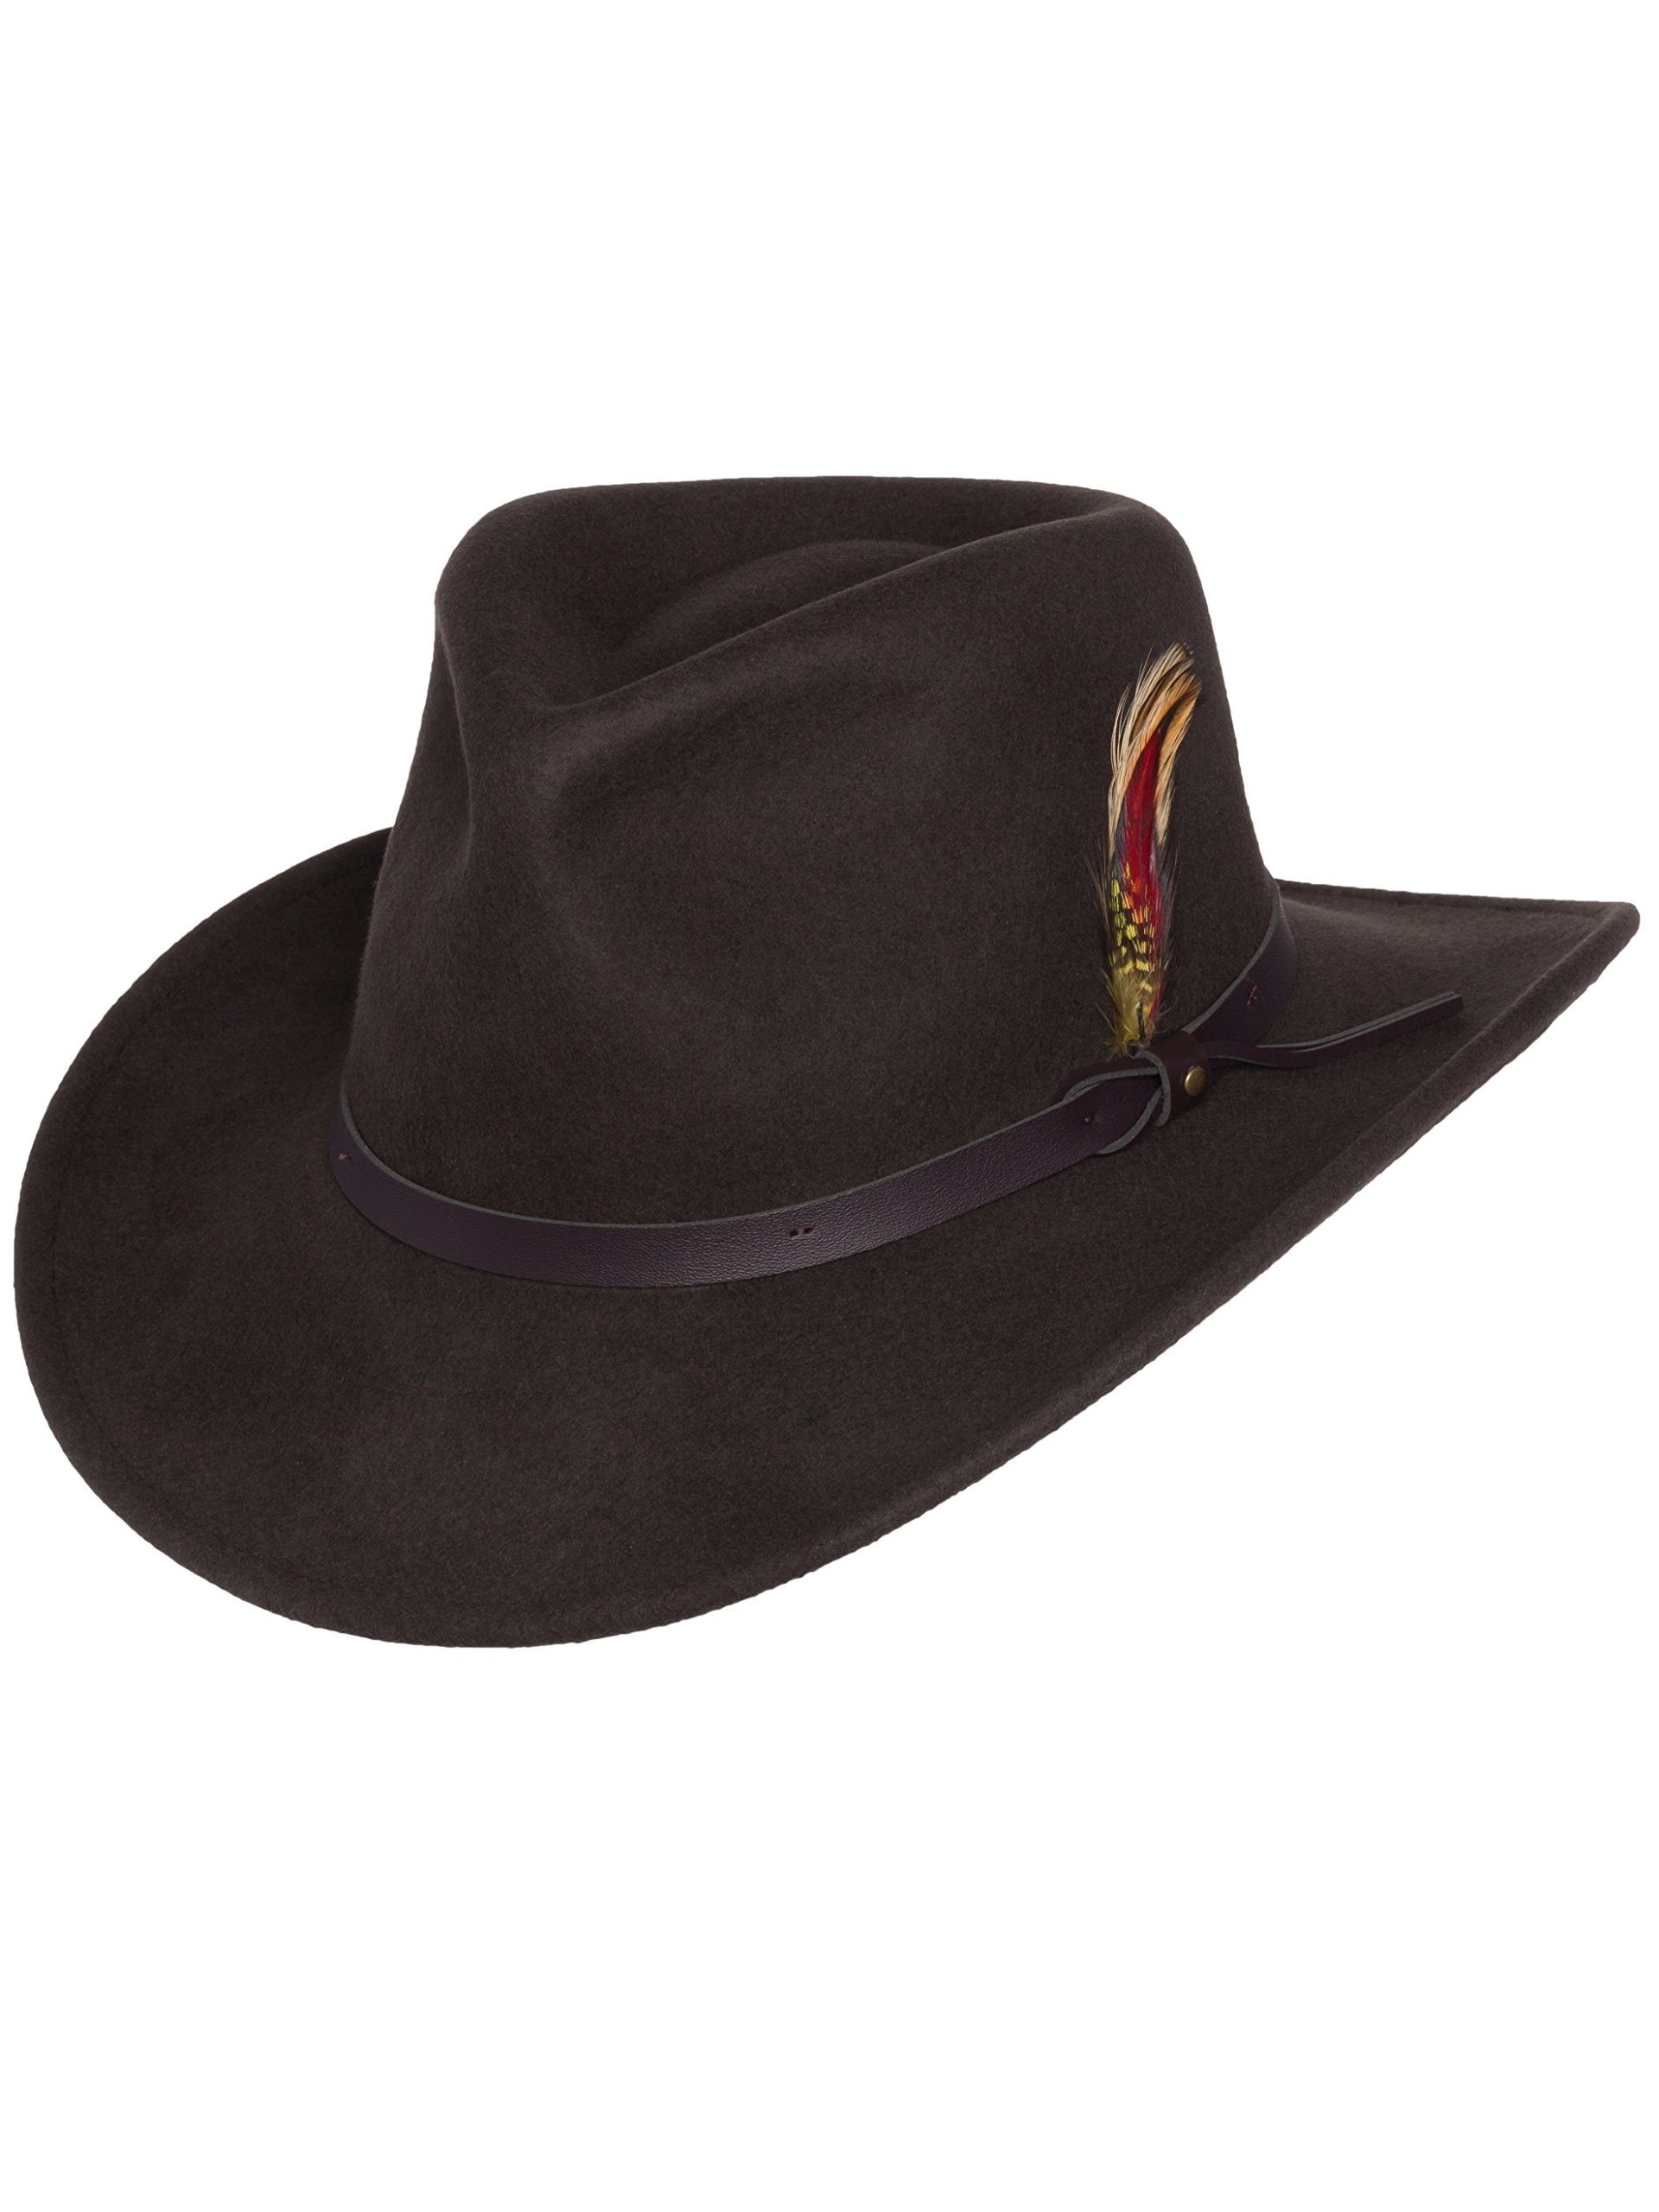 Men's Outback Wool Cowboy Hat Montana Brown Crushable Western Felt by Silver Canyon, Brown, Medium